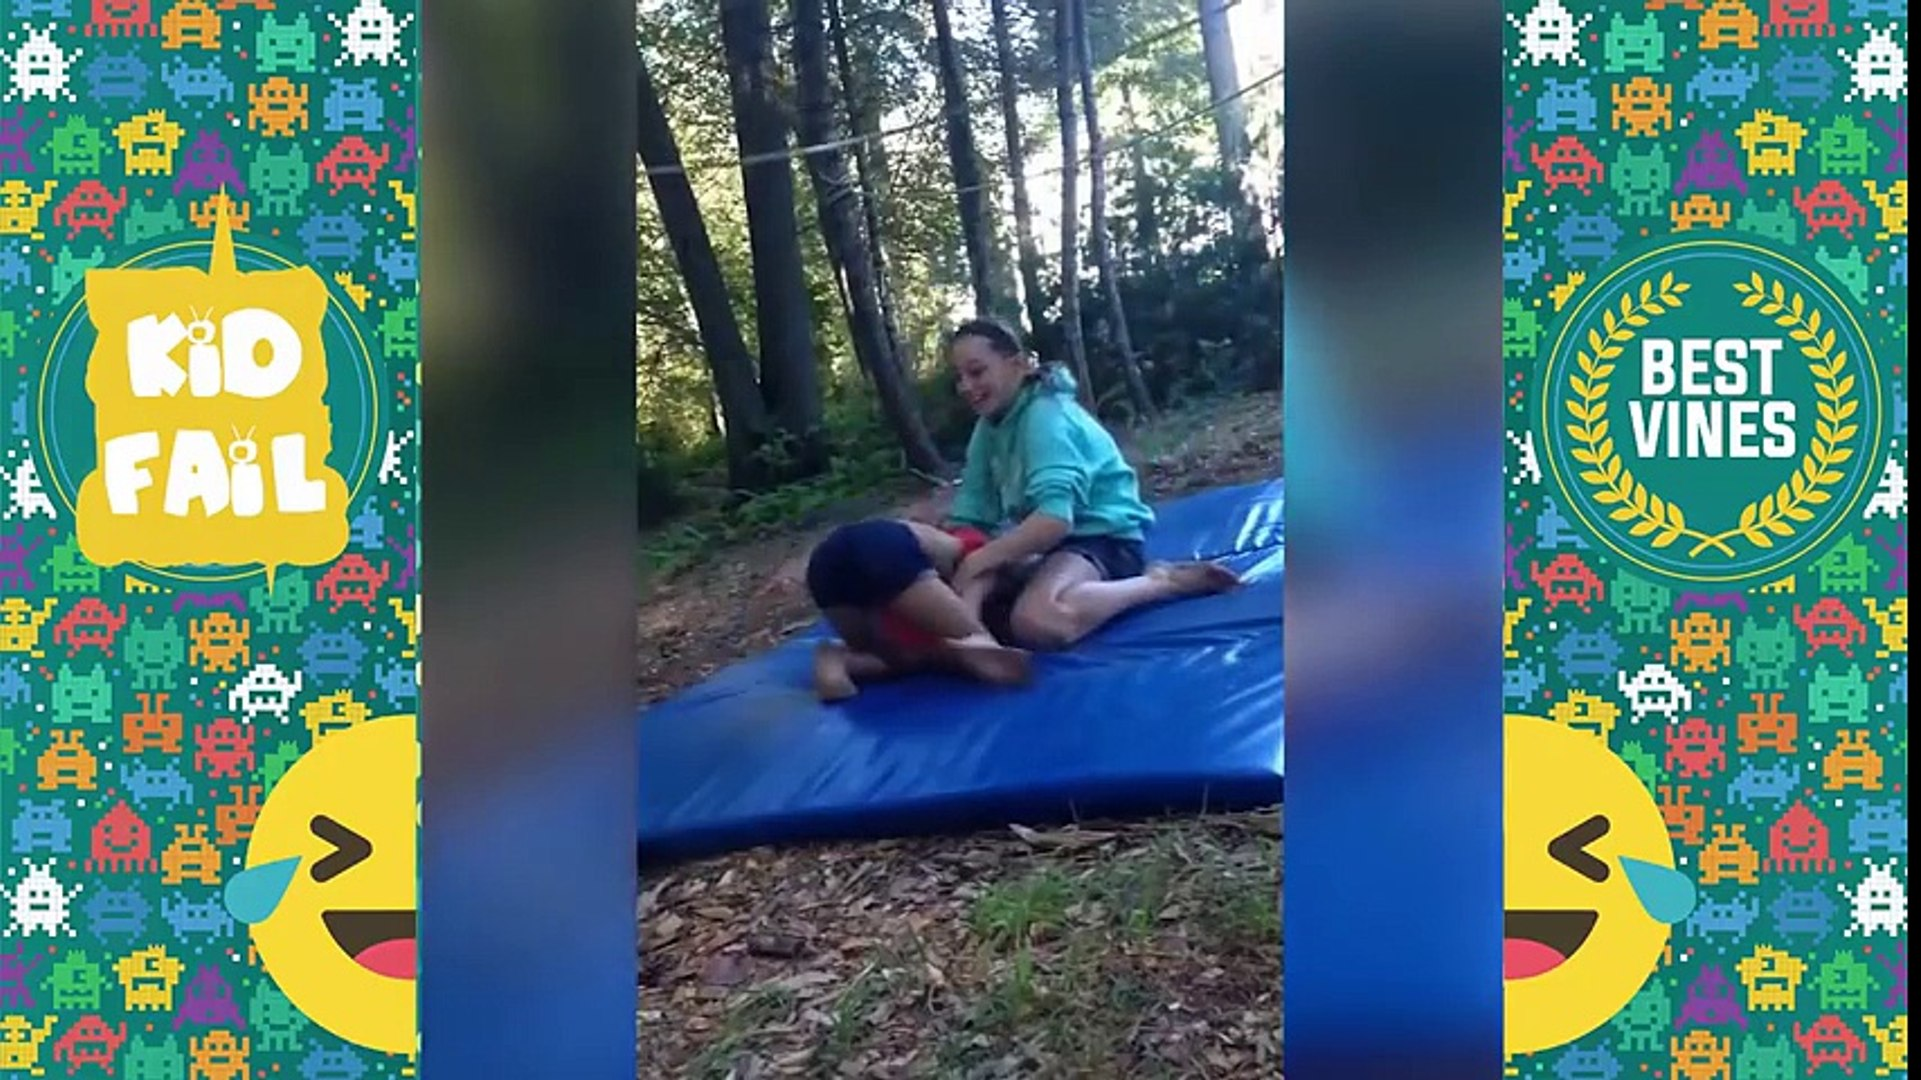 FUNNY KIDS - BEST KIDS FAILS   FUNNY KIDS FAILS TRY NOT TO LAUGH OR GRIN COMPILATION #02